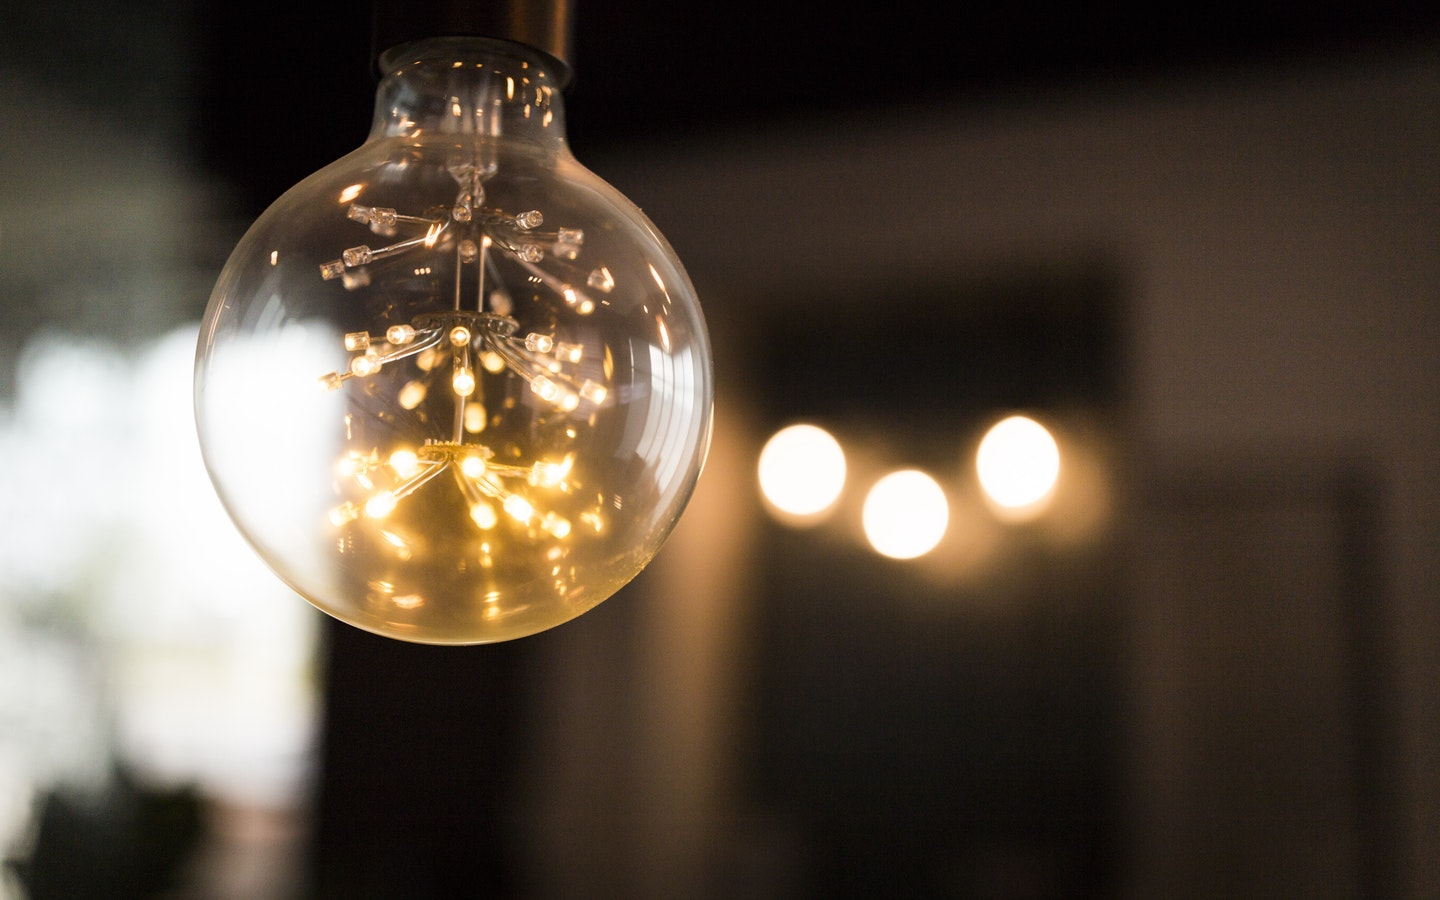 Upgrade your home and life by installing LED lights.